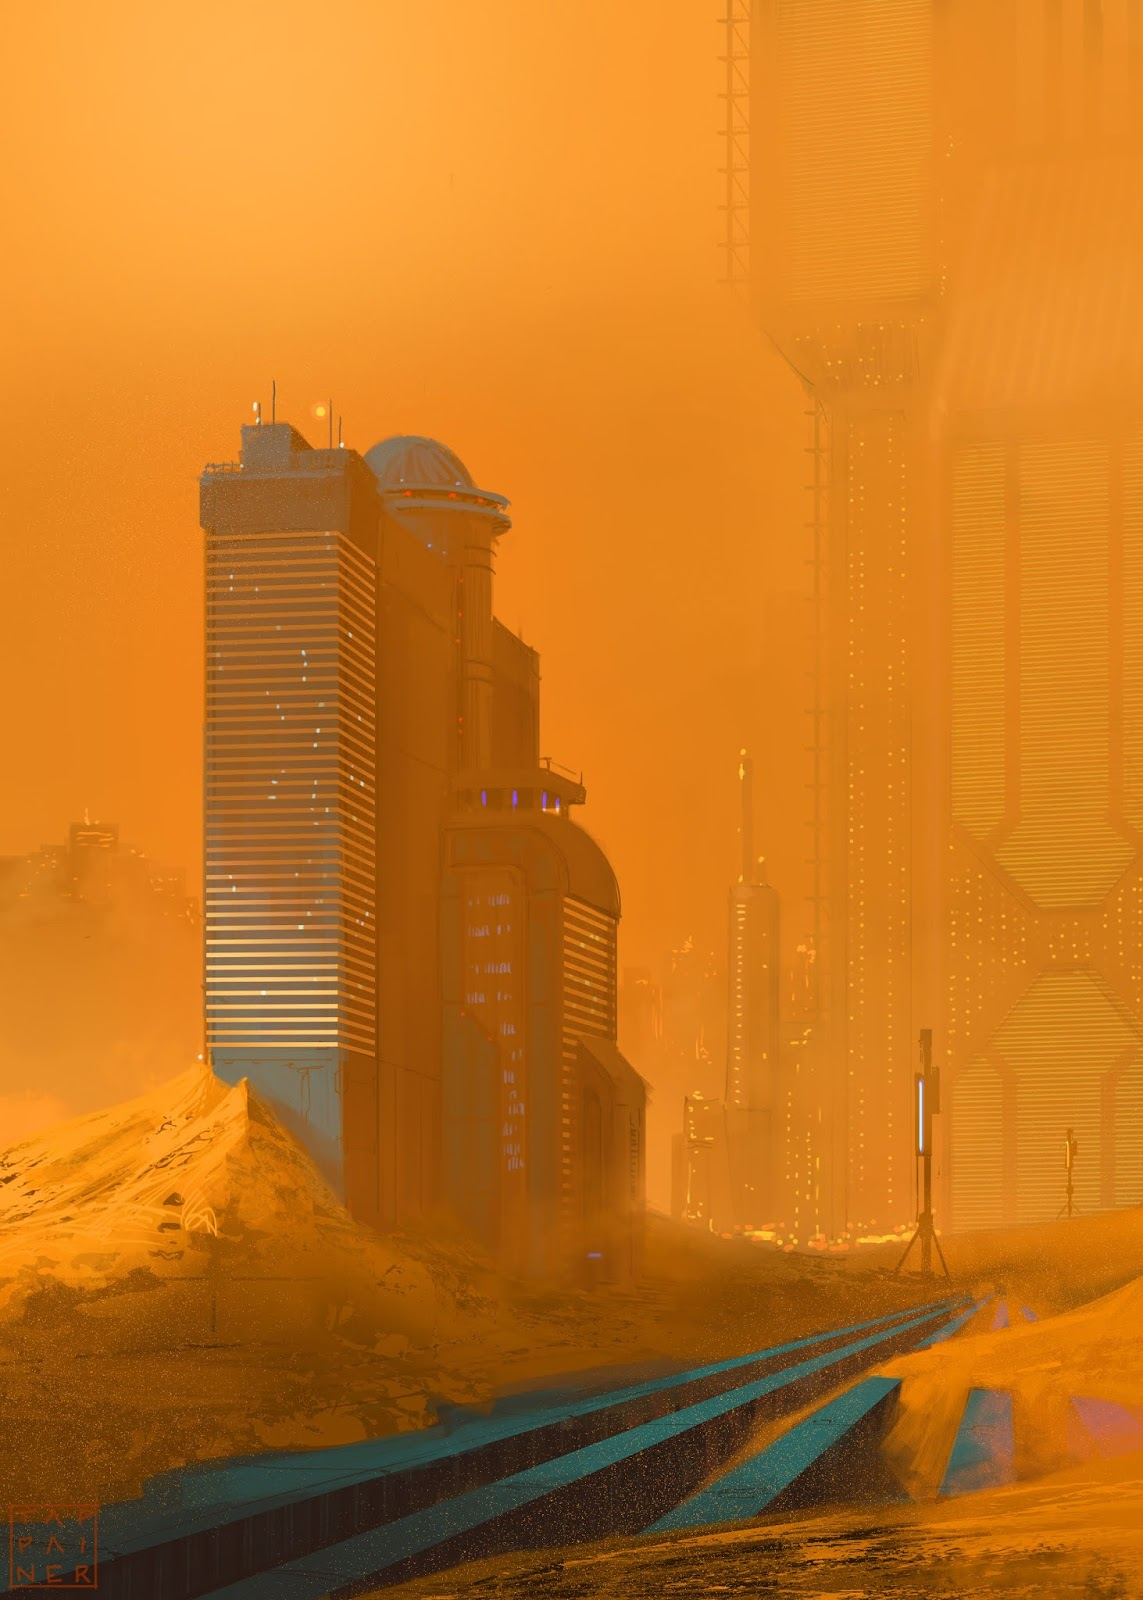 Sandstorm in a Martian city by Giacomo Tappainer